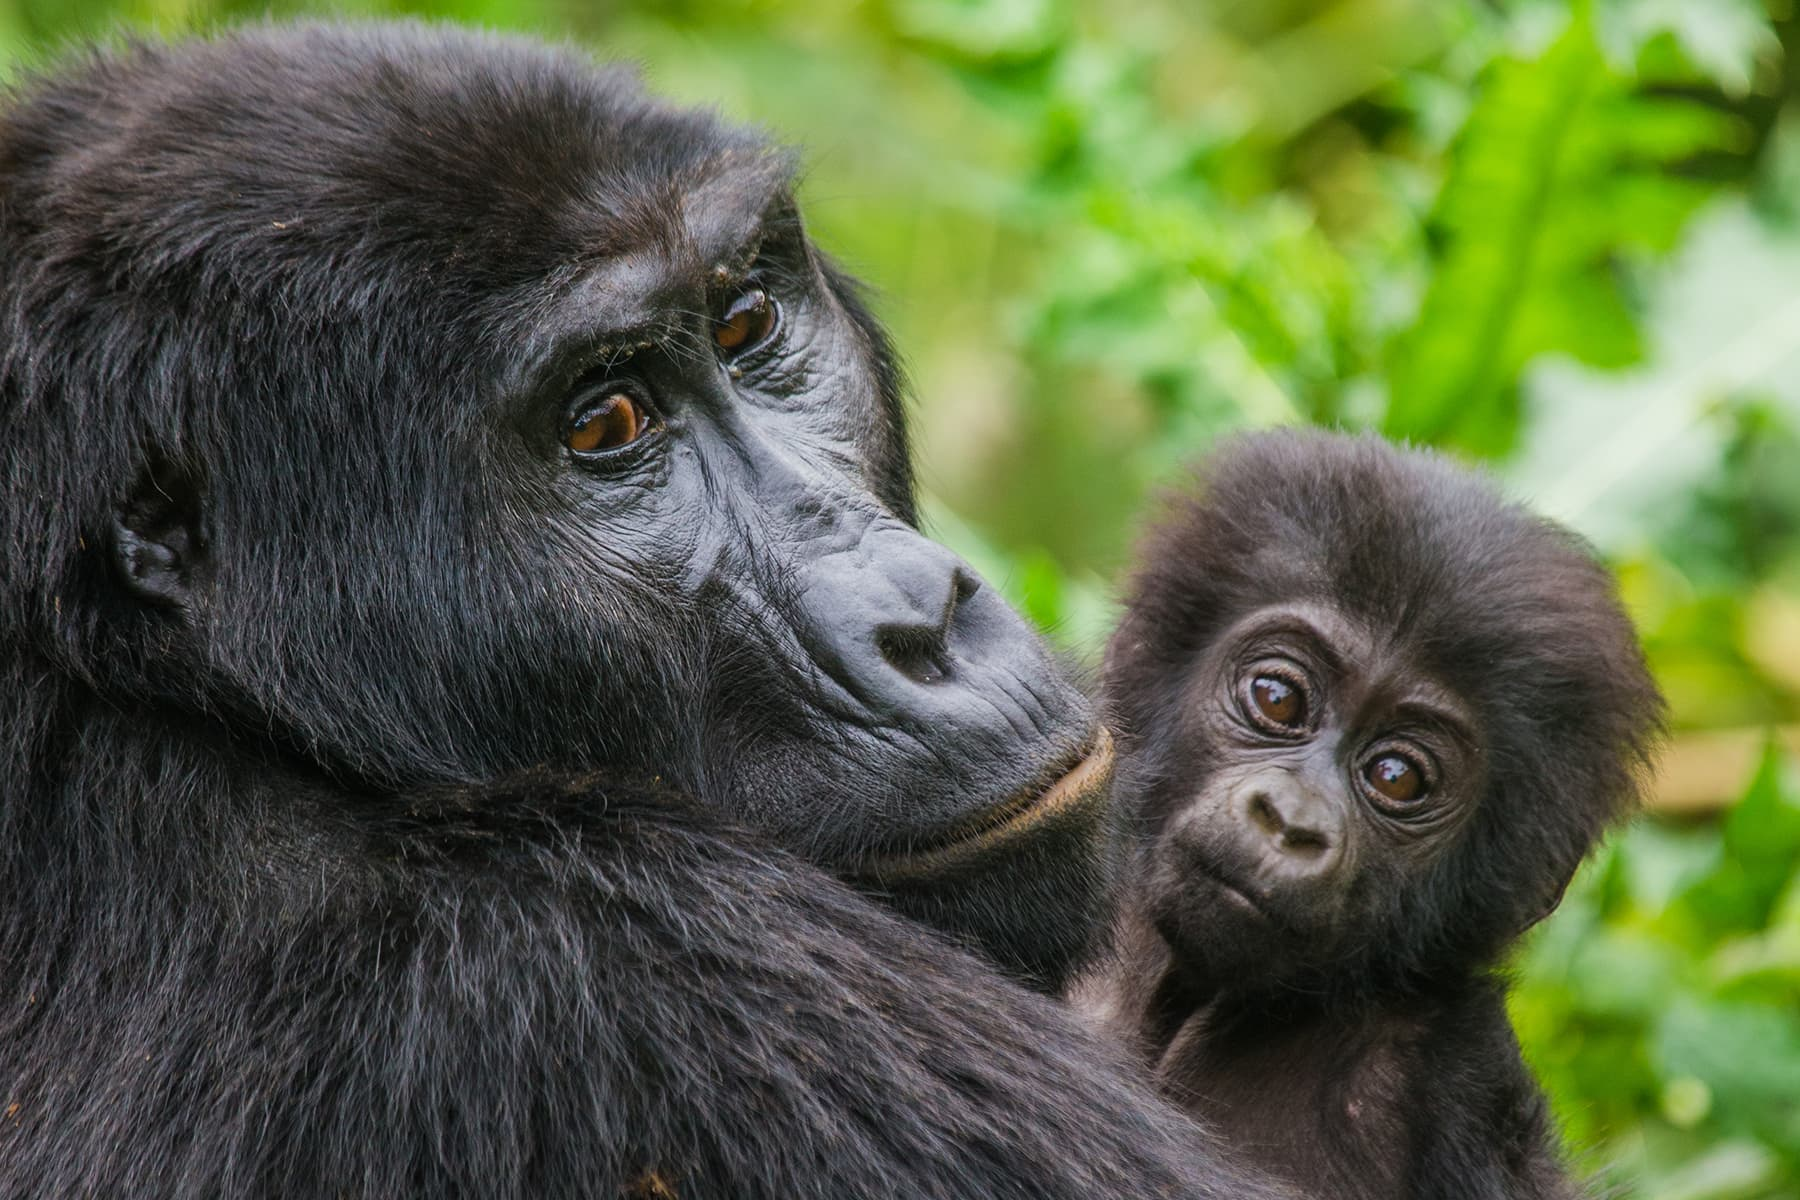 A mother gorilla holds her baby